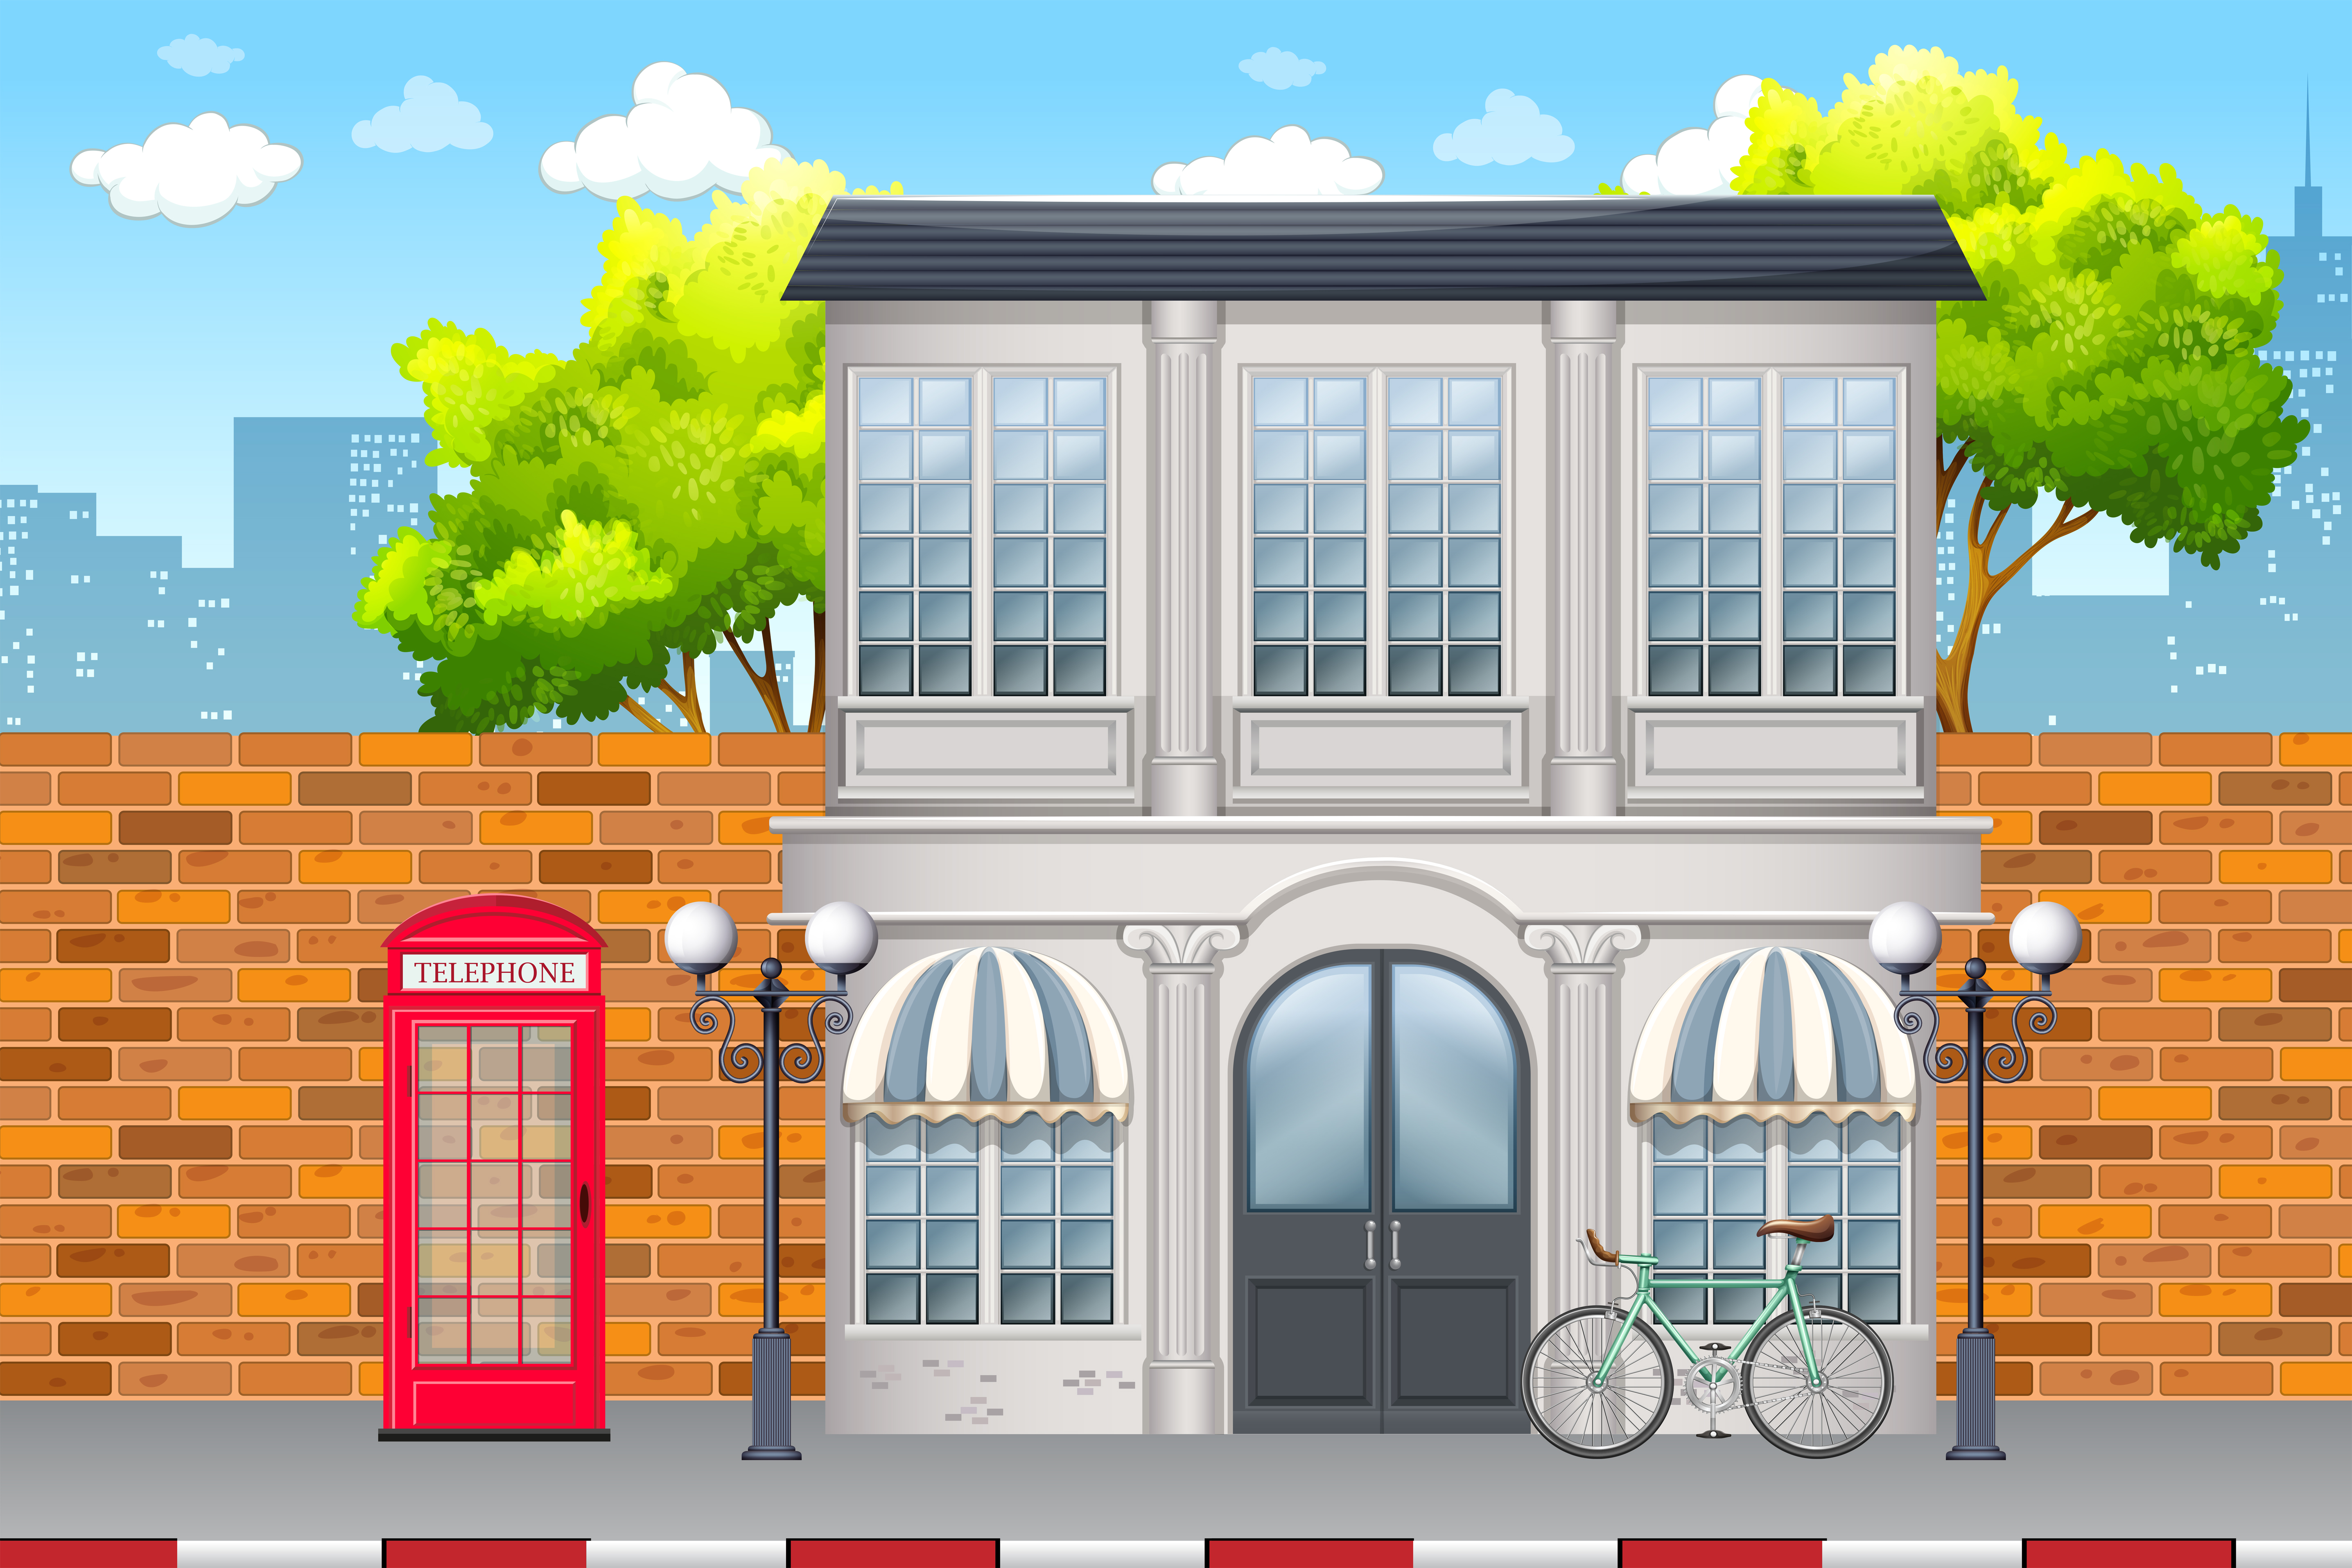 Urban street day time scene download free vector art for Home design 3d professional italiano gratis